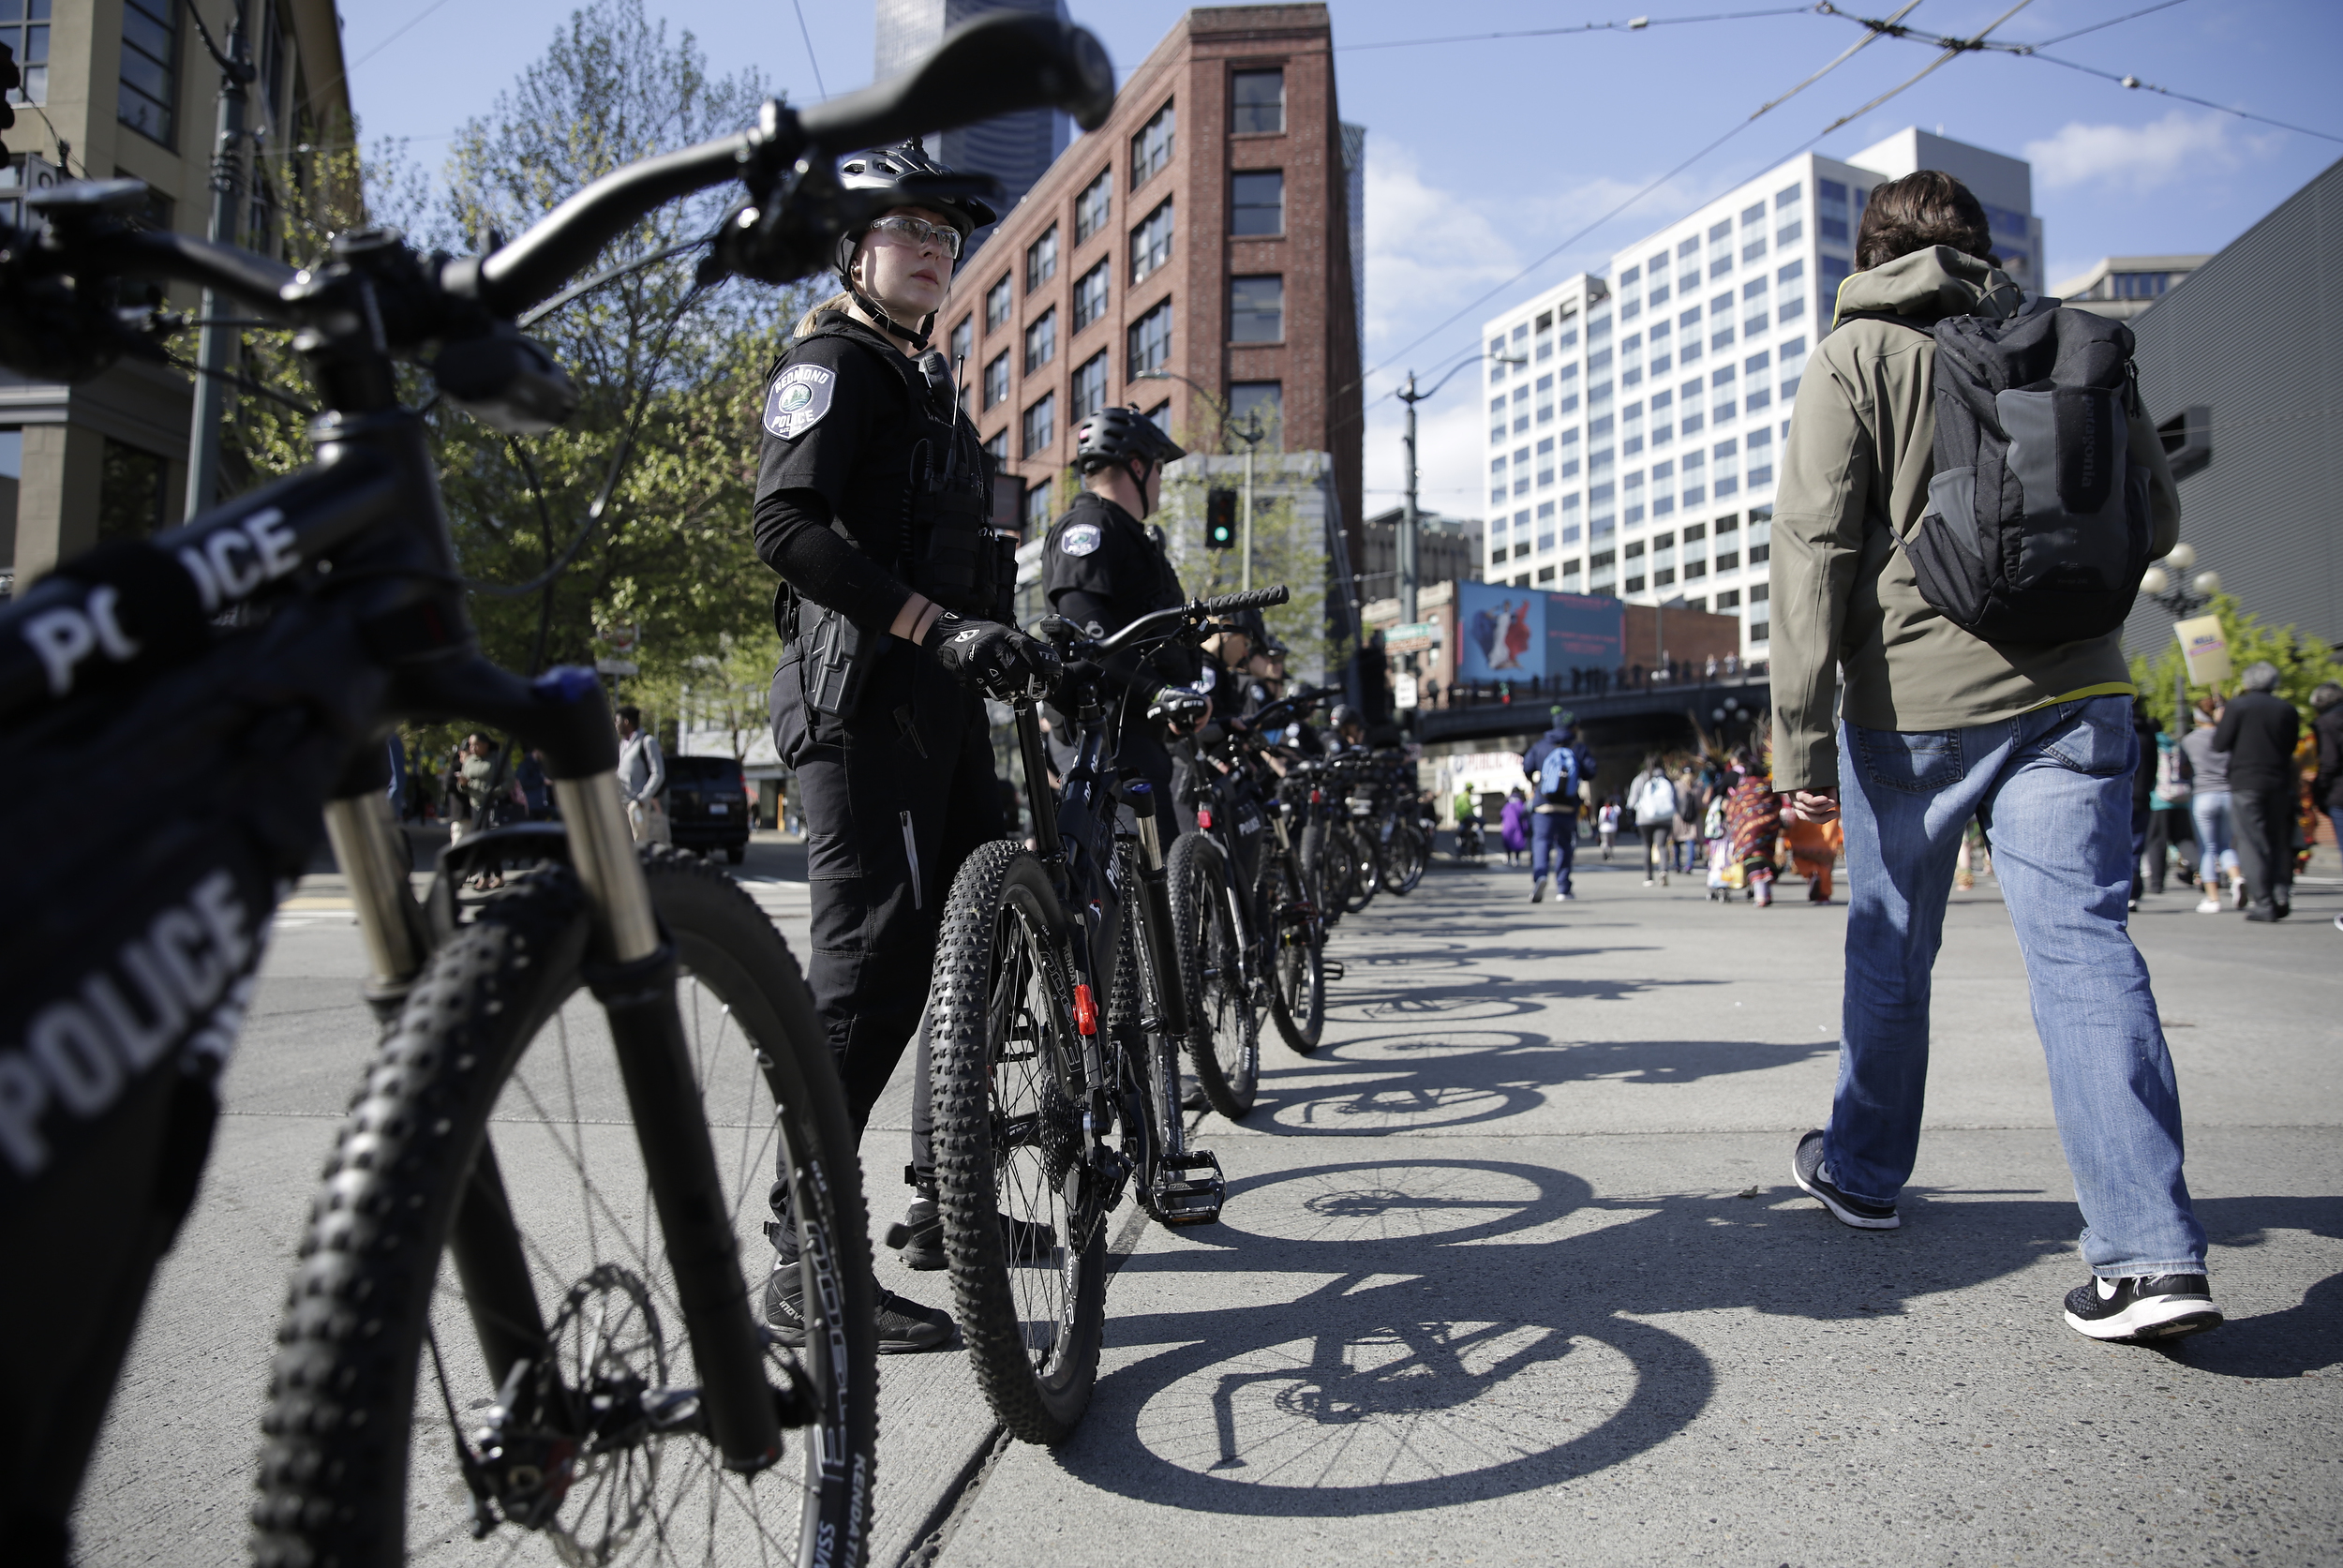 Bicycle officers from multiple departments monitor the annual May Day March for Workers and Immigrant Rights as it progresses along 4th Avenue in Seattle.